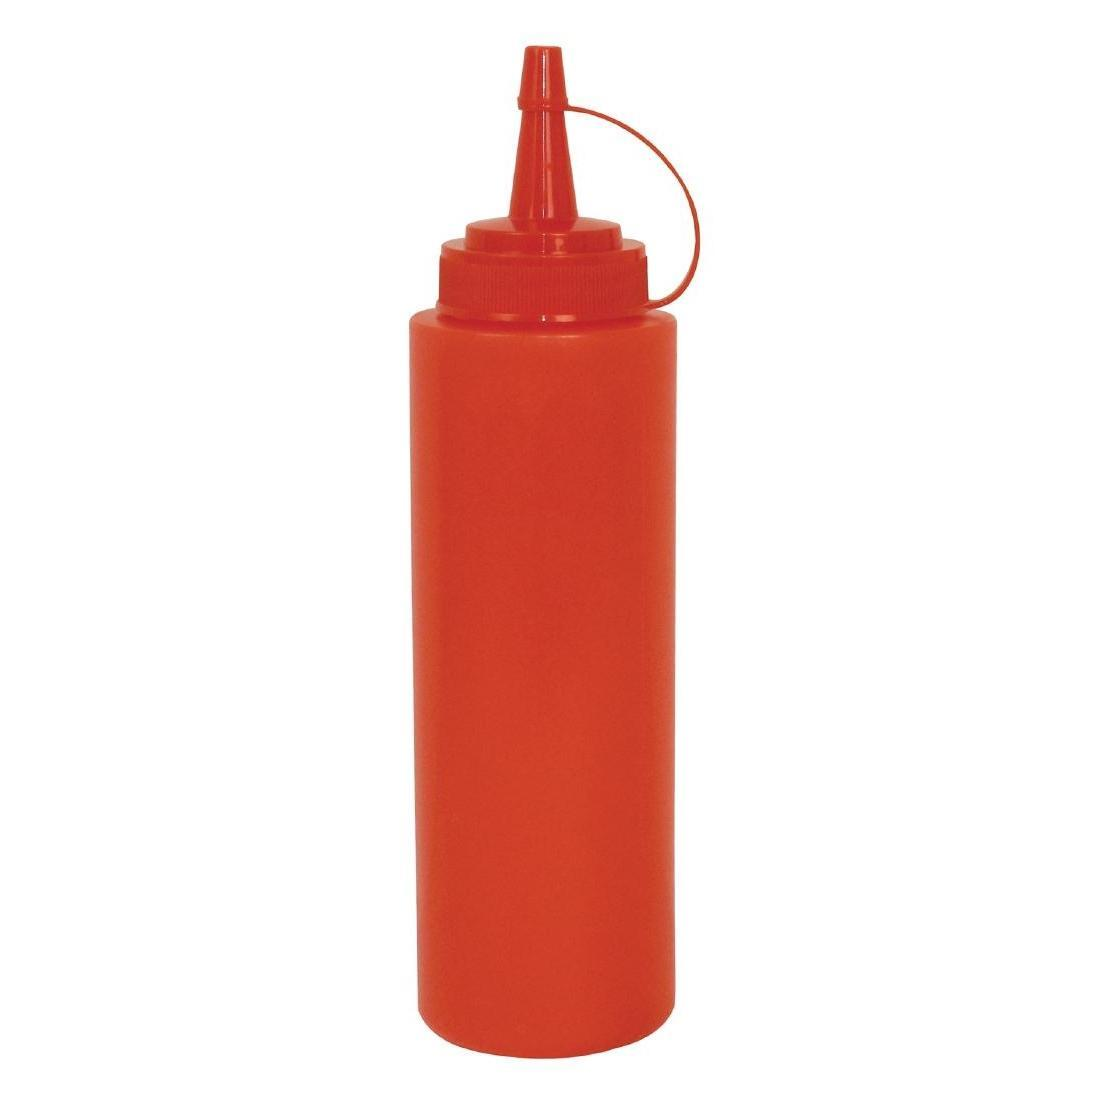 Vogue Red Squeeze Sauce Bottle 35oz - W833